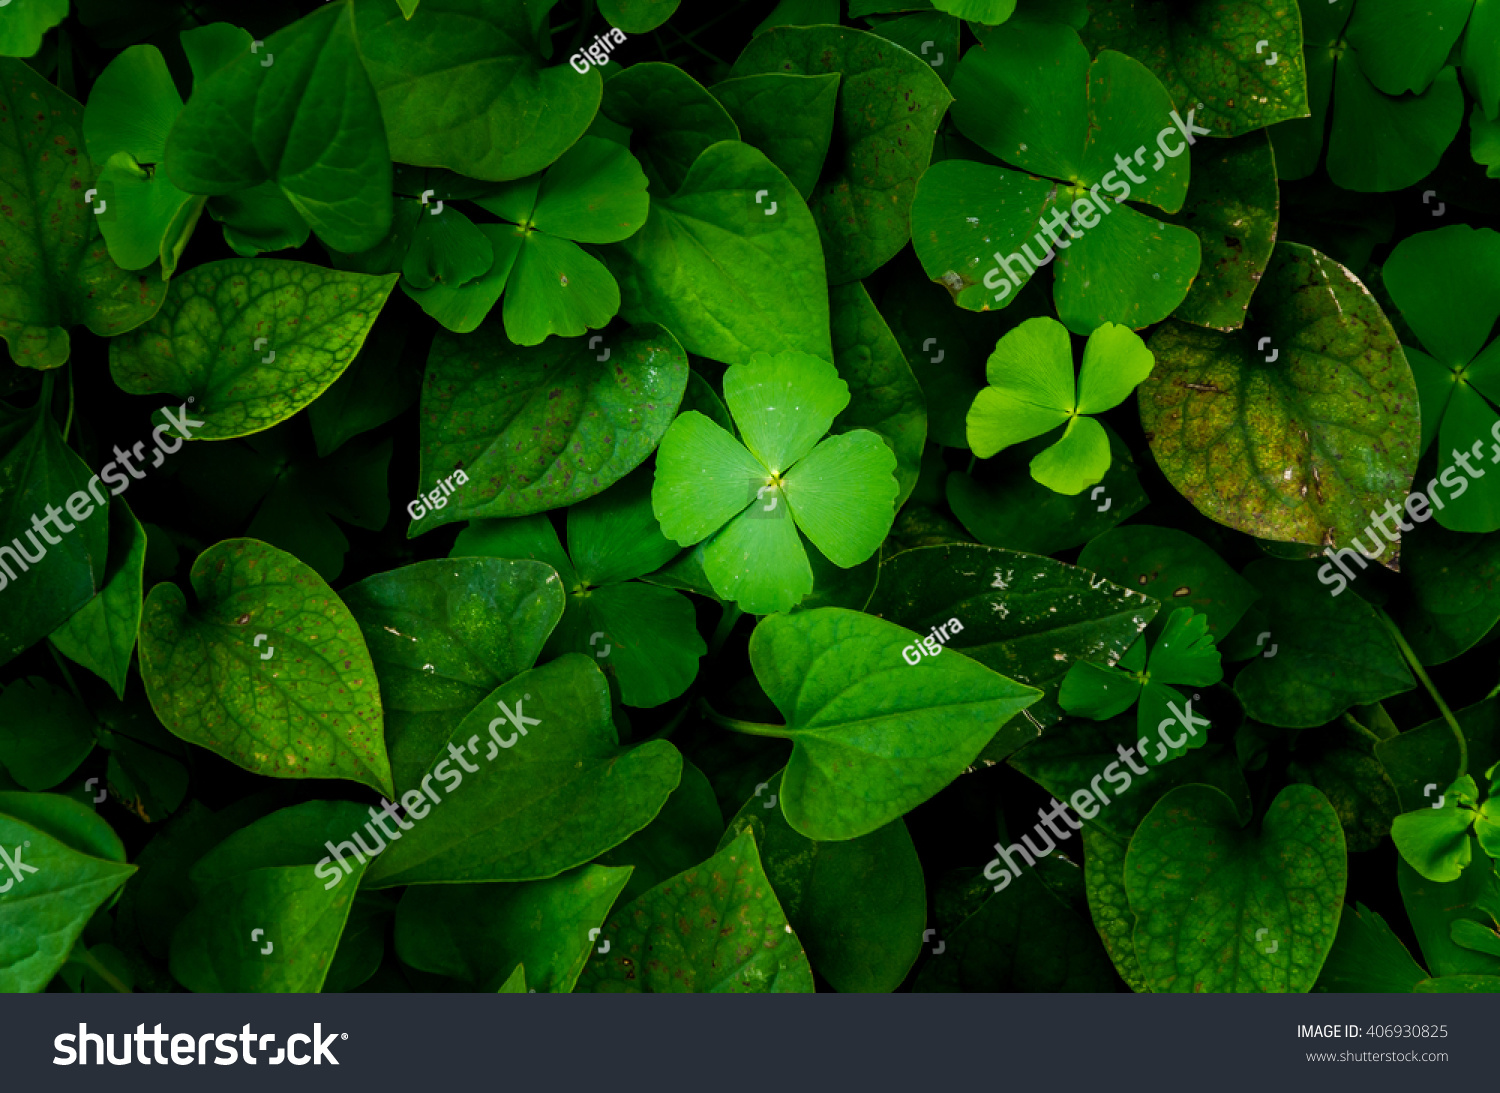 Dark Green Leaves Background Fresh Condition Stock Photo ...